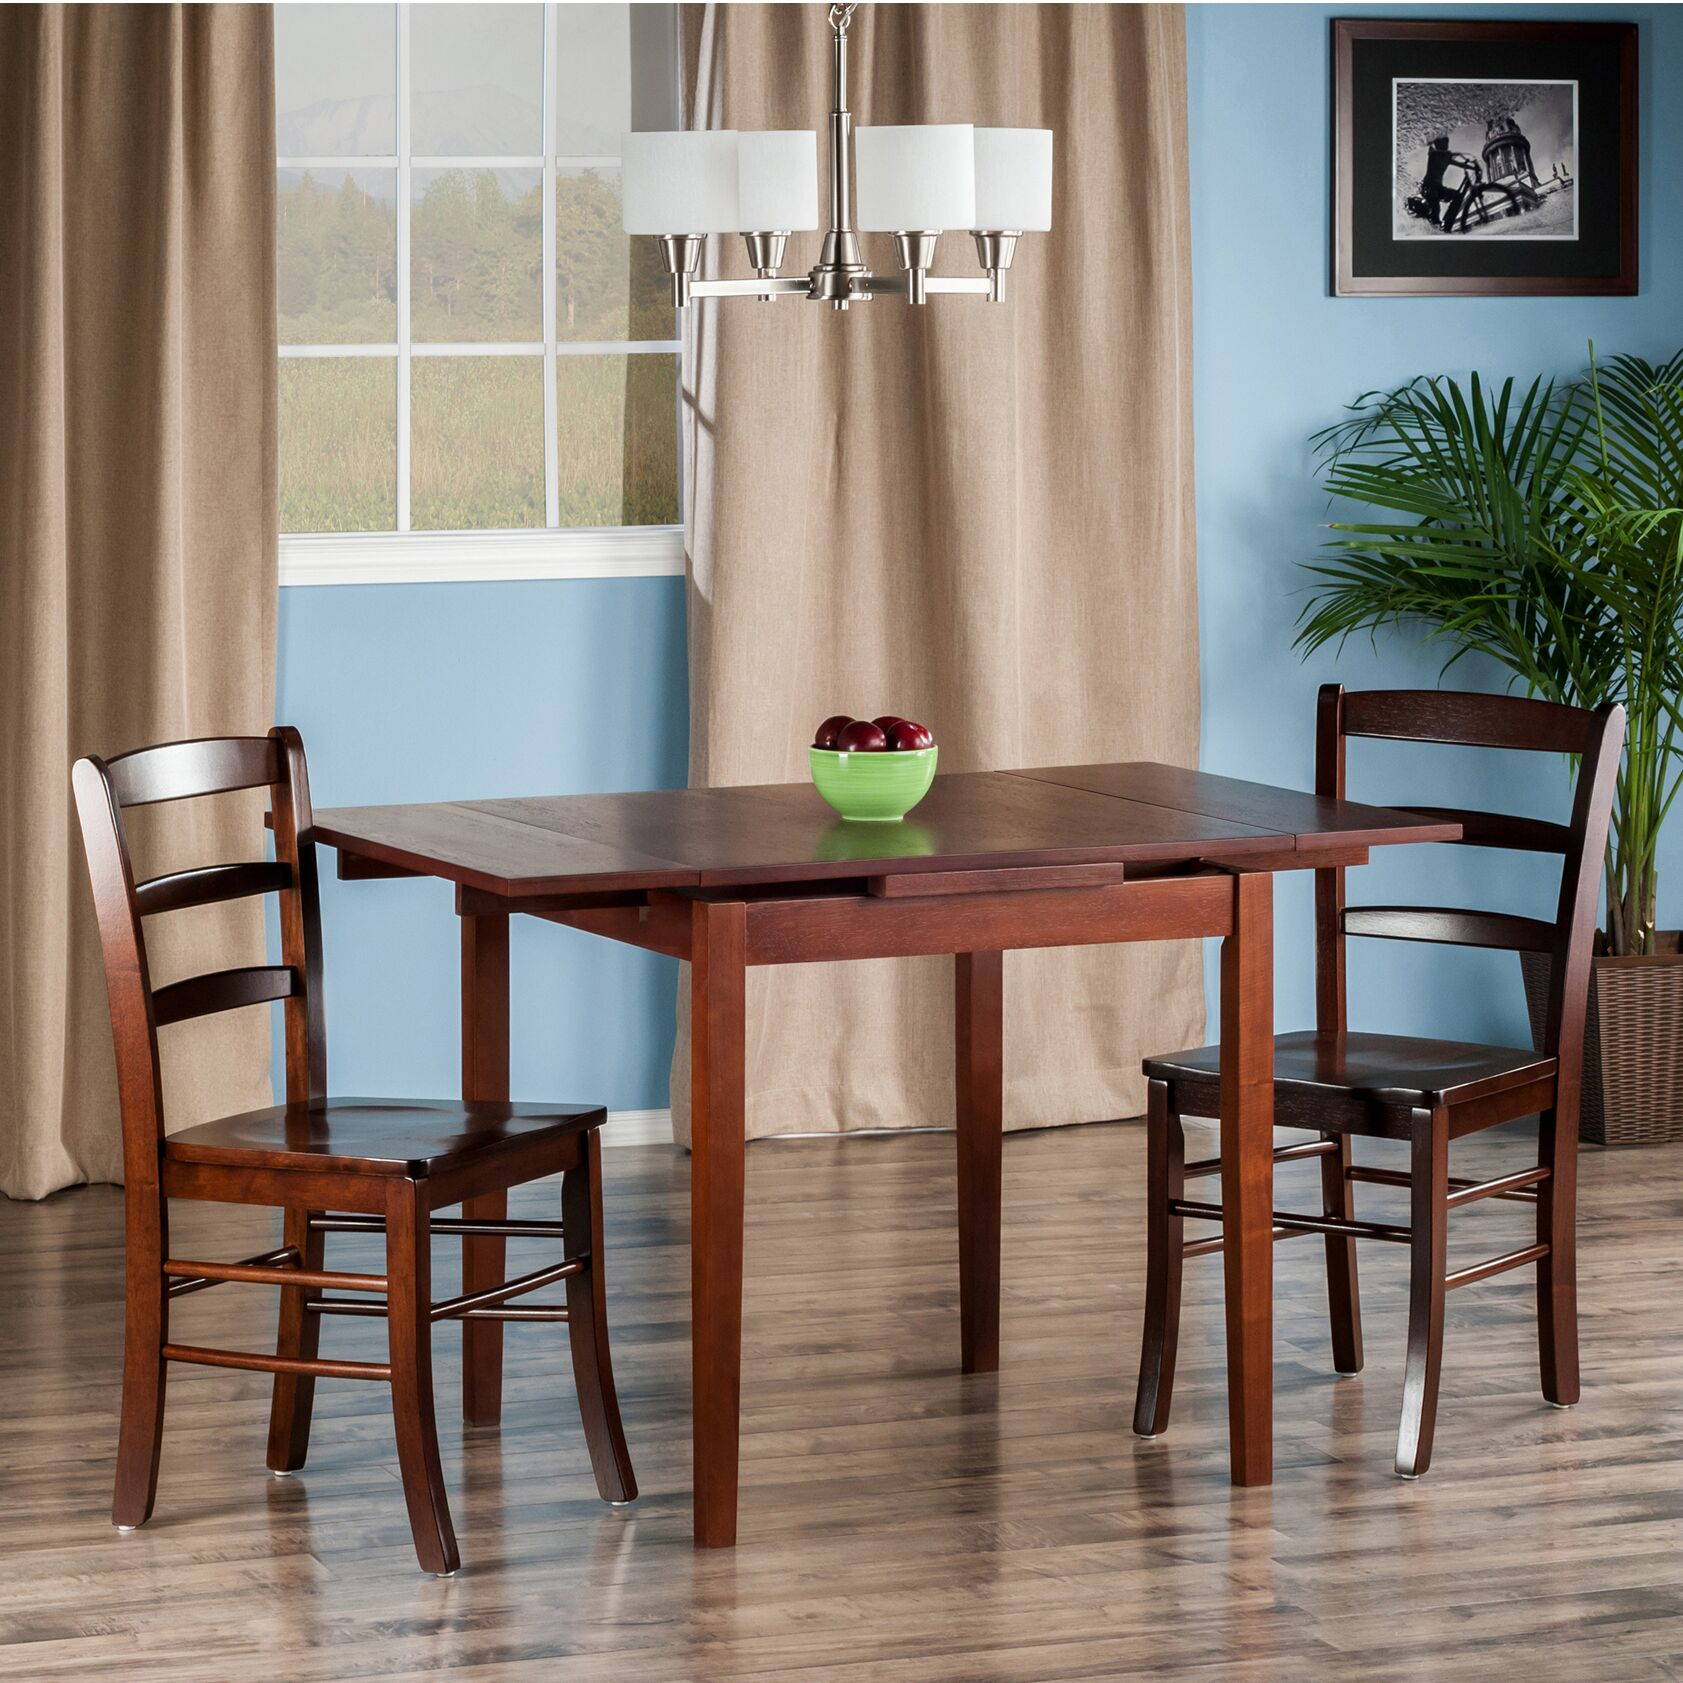 Dining Table Sets Shaws 3 Piece Extendable Dining Set